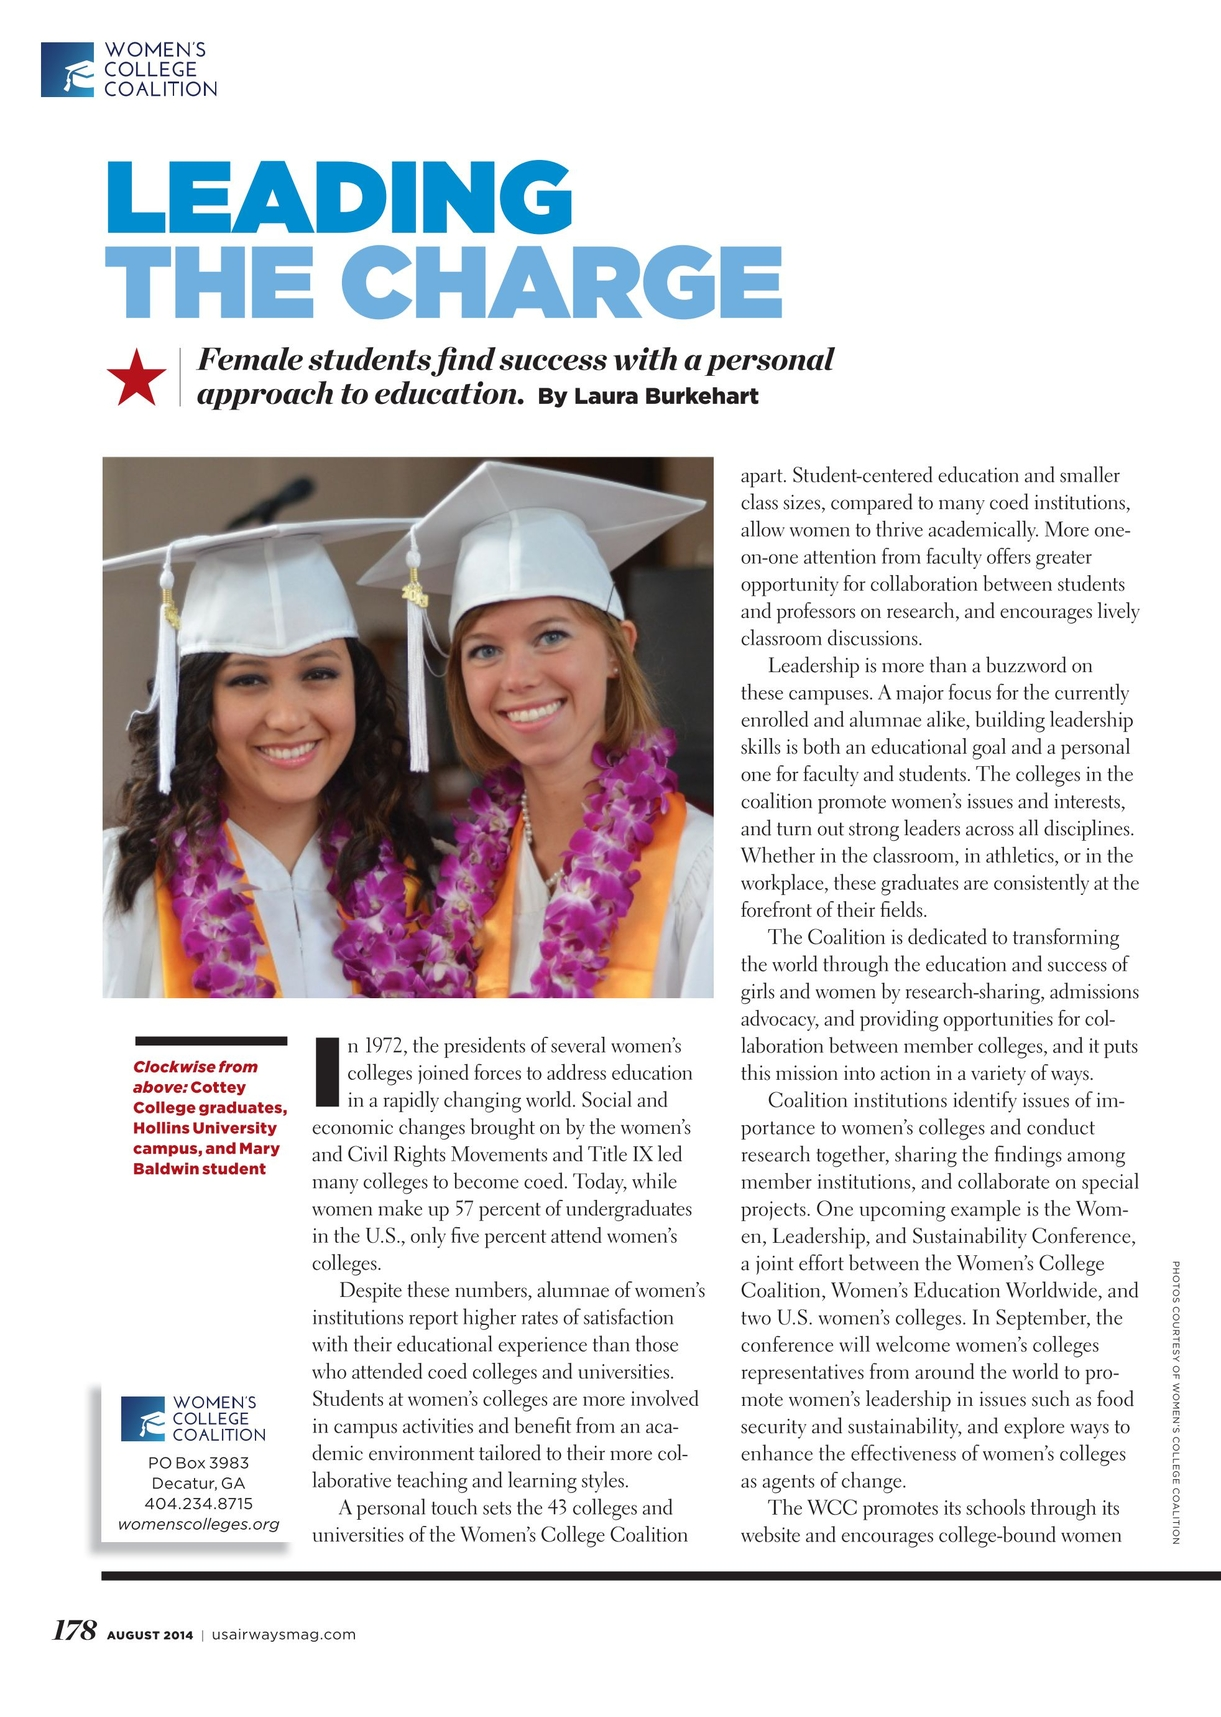 Us airways august 2014 178 179 us airways august 2014 page 178 leading the charge female students nd success with a personal approach to education by laura burkehart clockwise ccuart Images